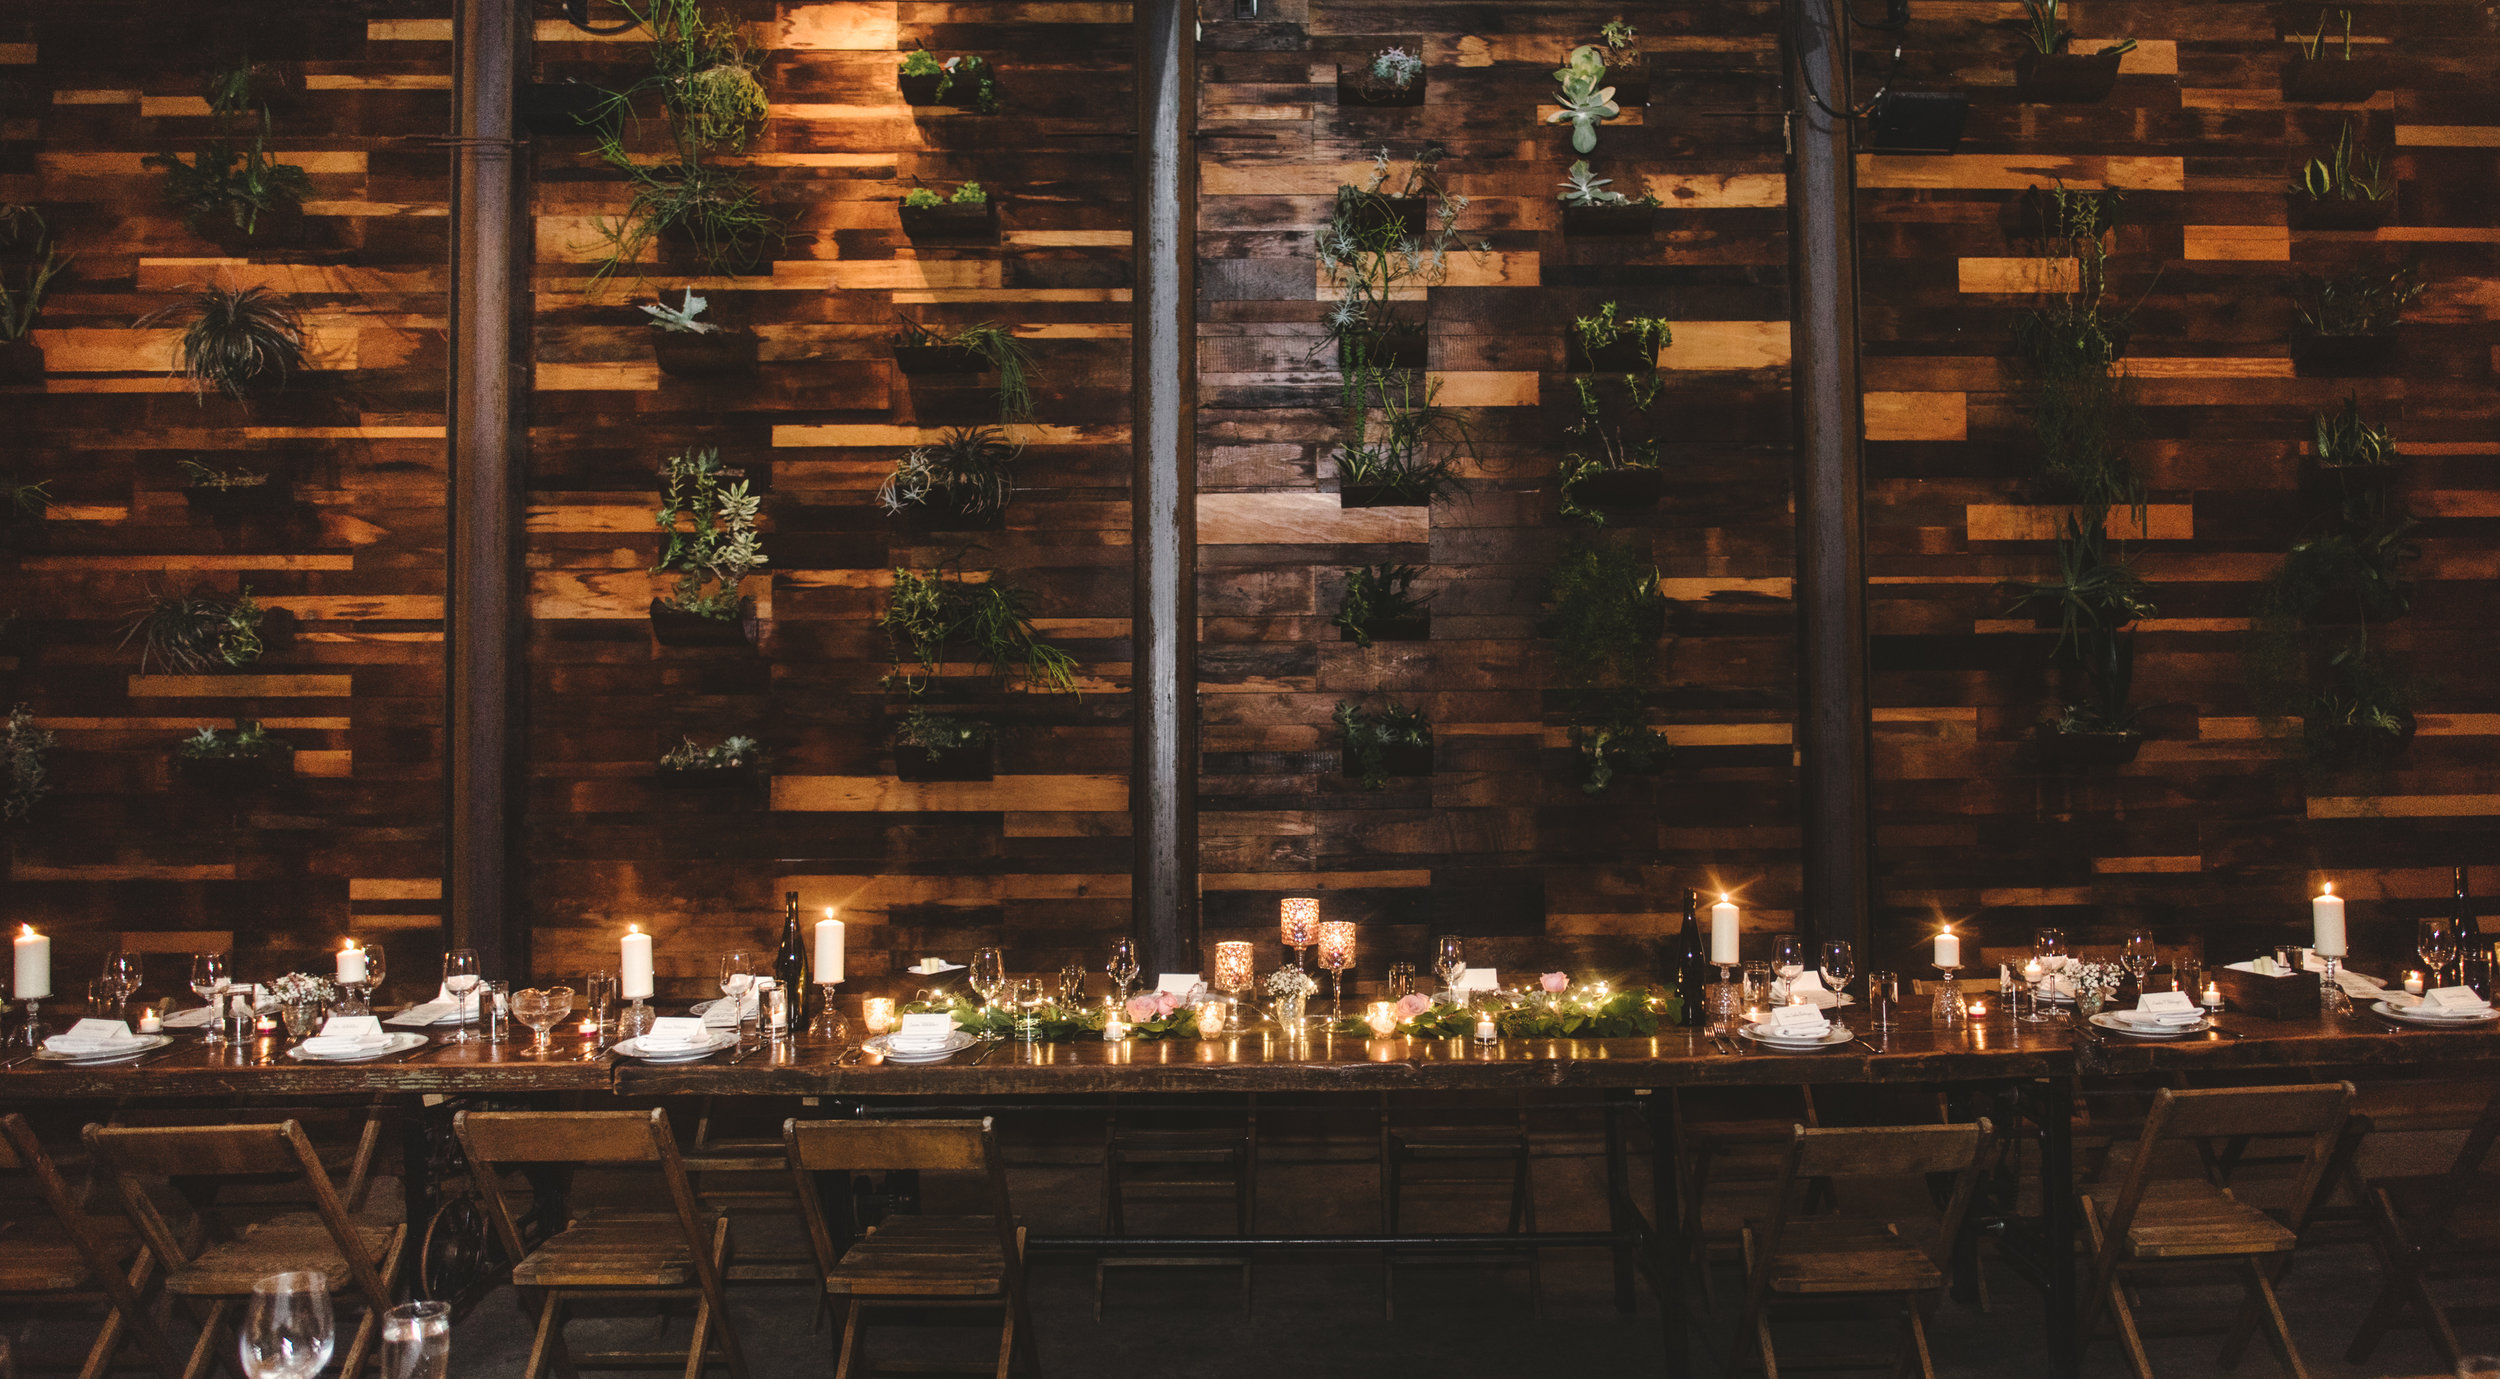 BROOKLYN WINERY WEDDING - TWOTWENTY by CHI-CHI AGBIM-313.jpg